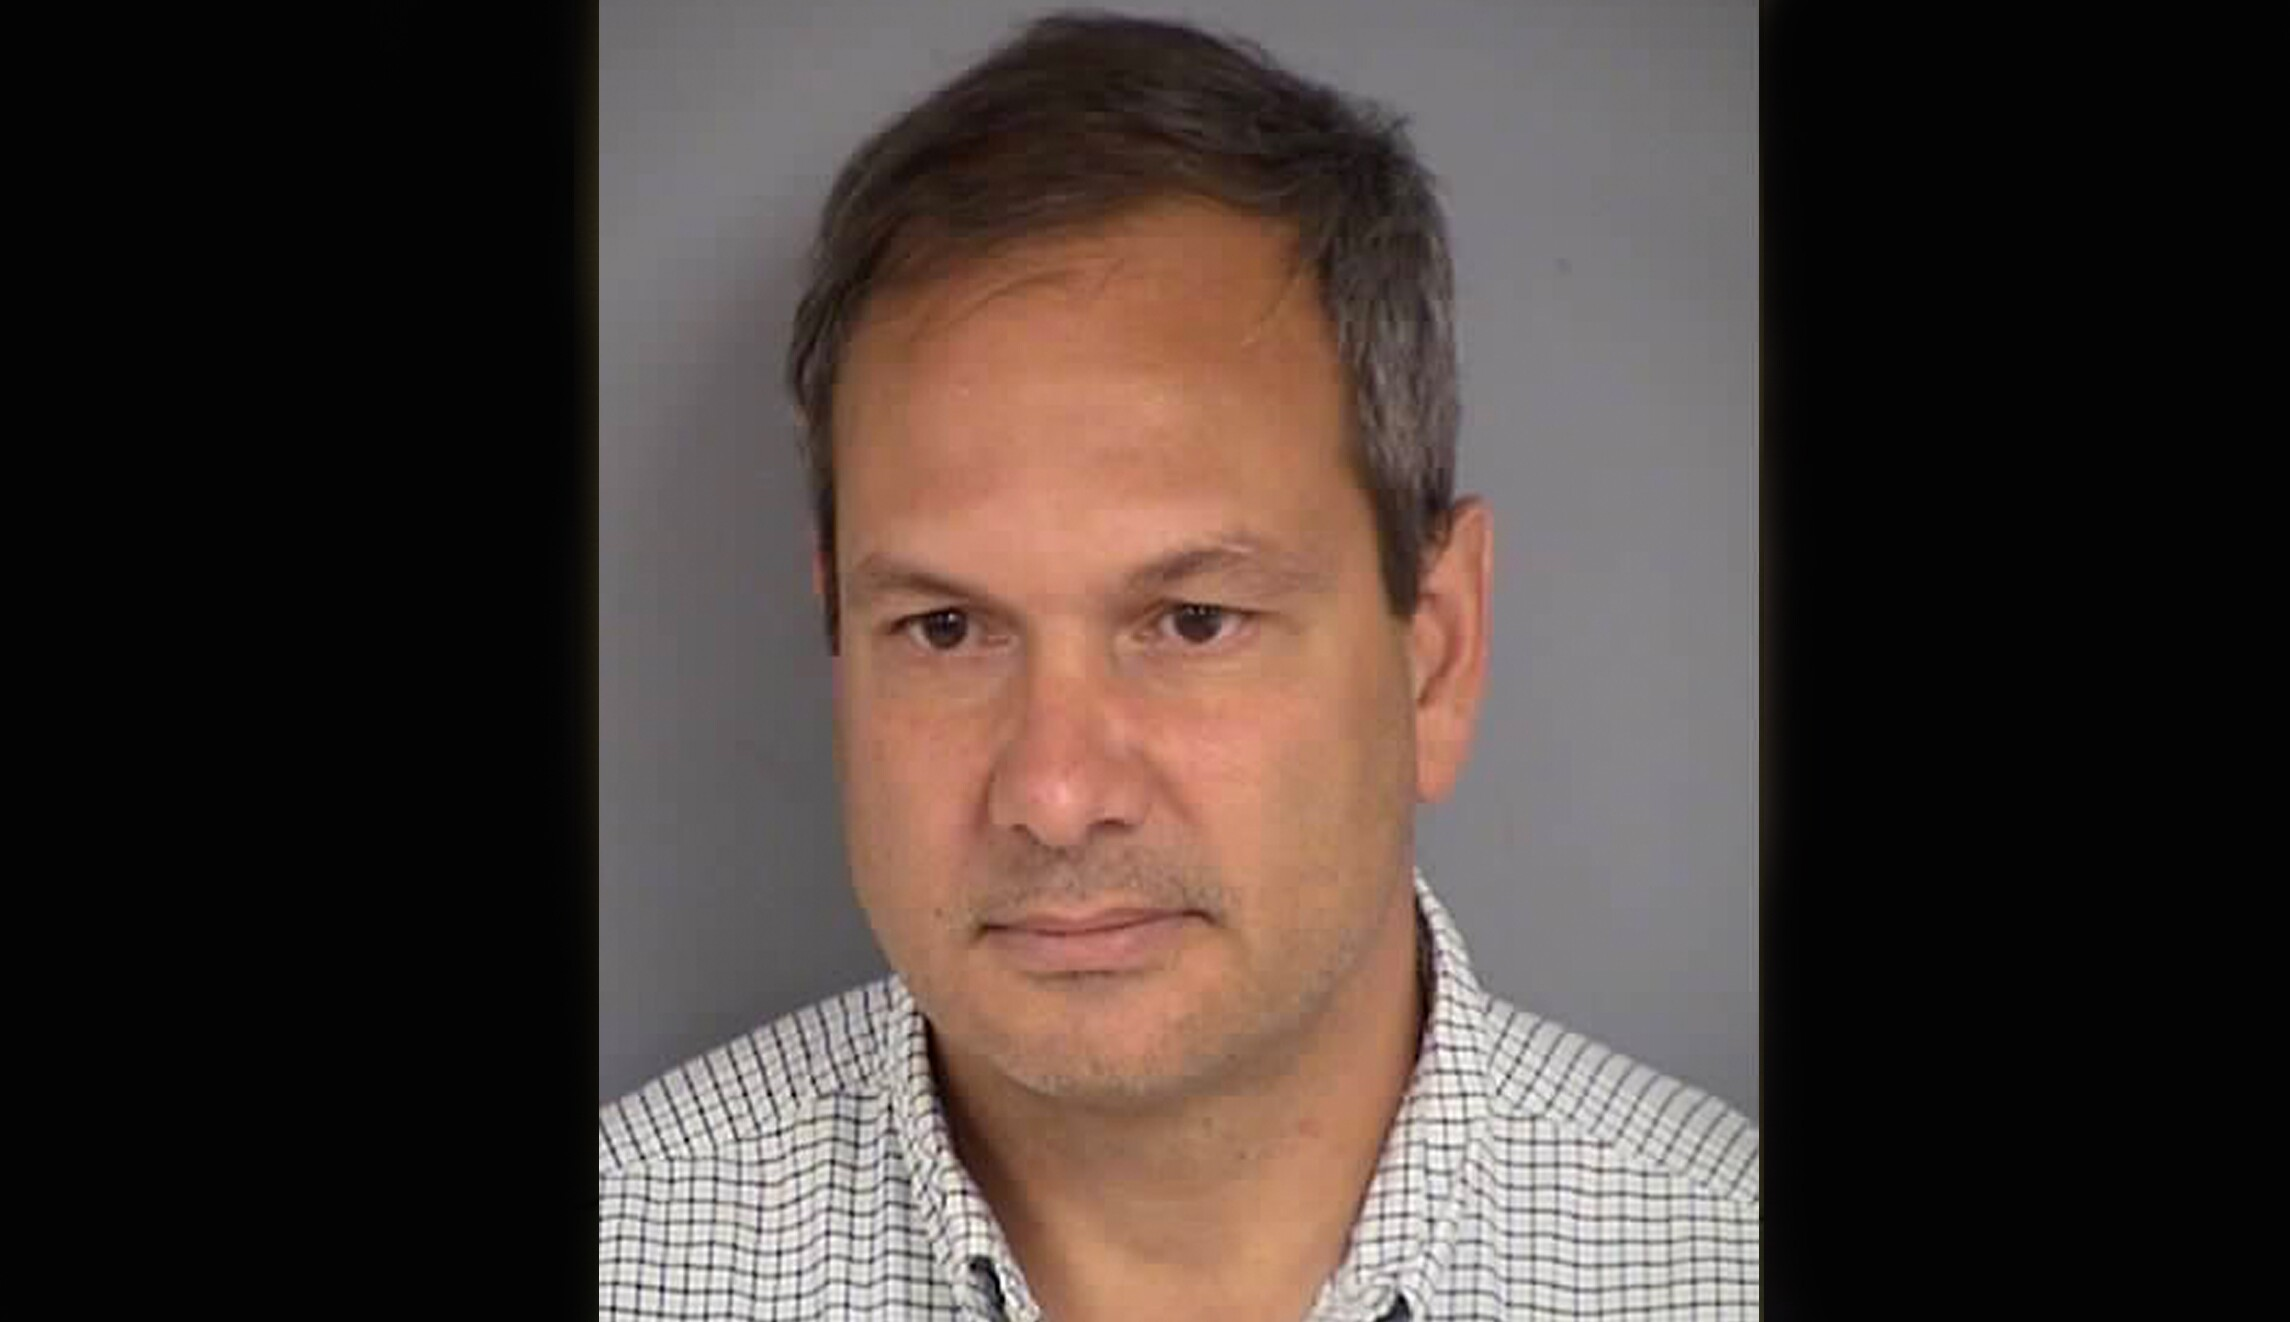 More civility: Notorious Dem operative arrested for battering a GOP governor candidate's female campaign manager